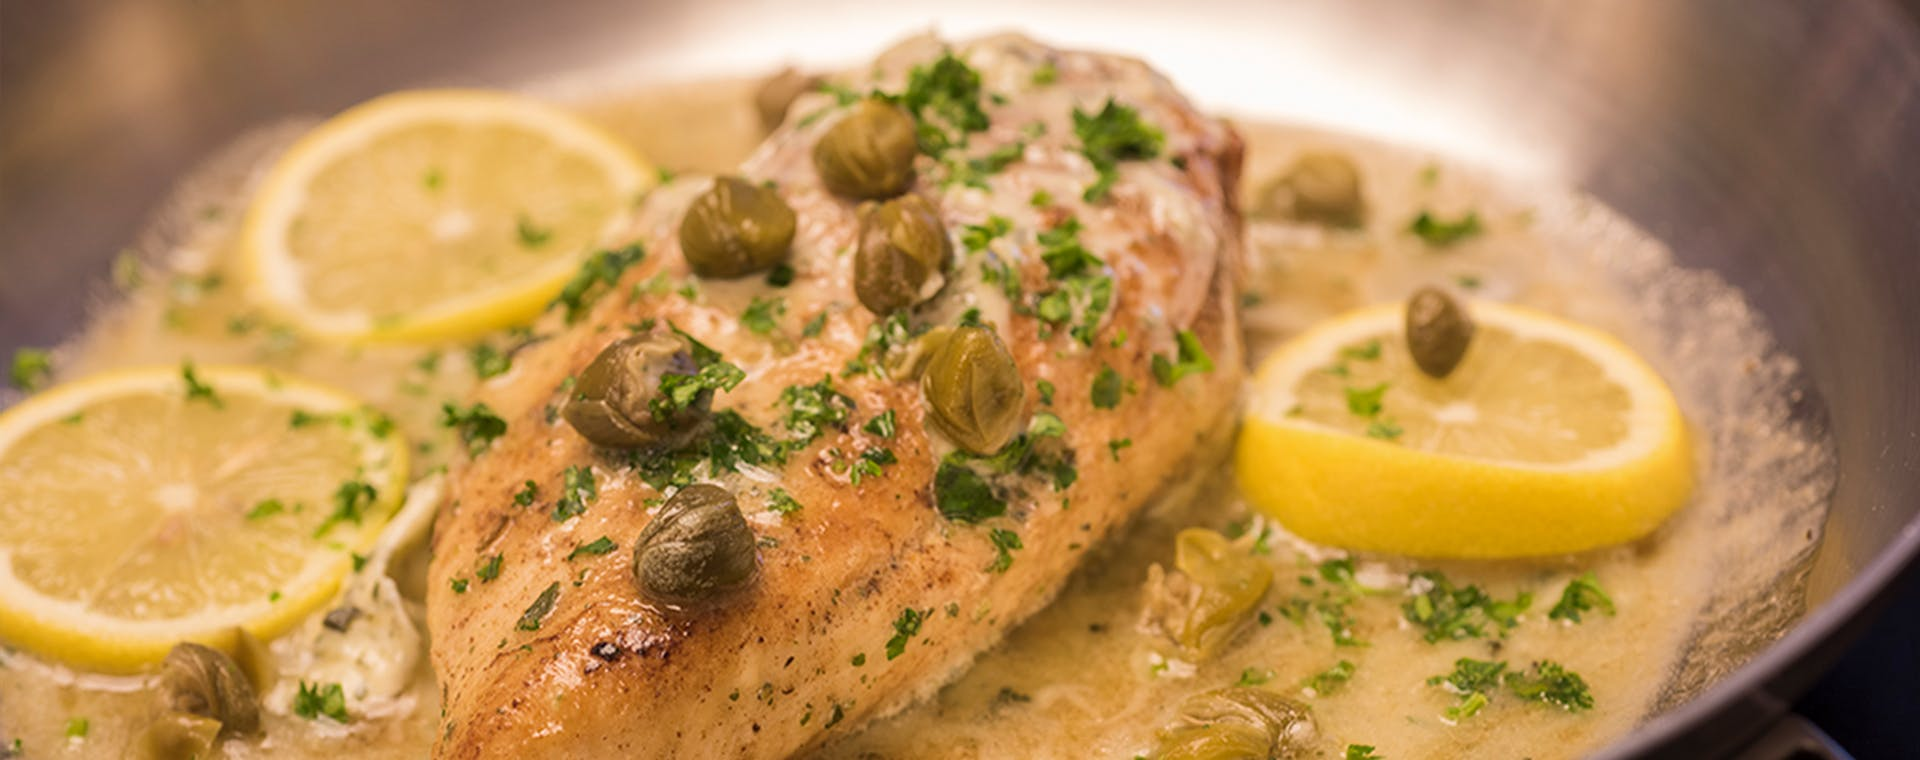 Chicken Piccata with Lemon Garlic Herb flavored butter